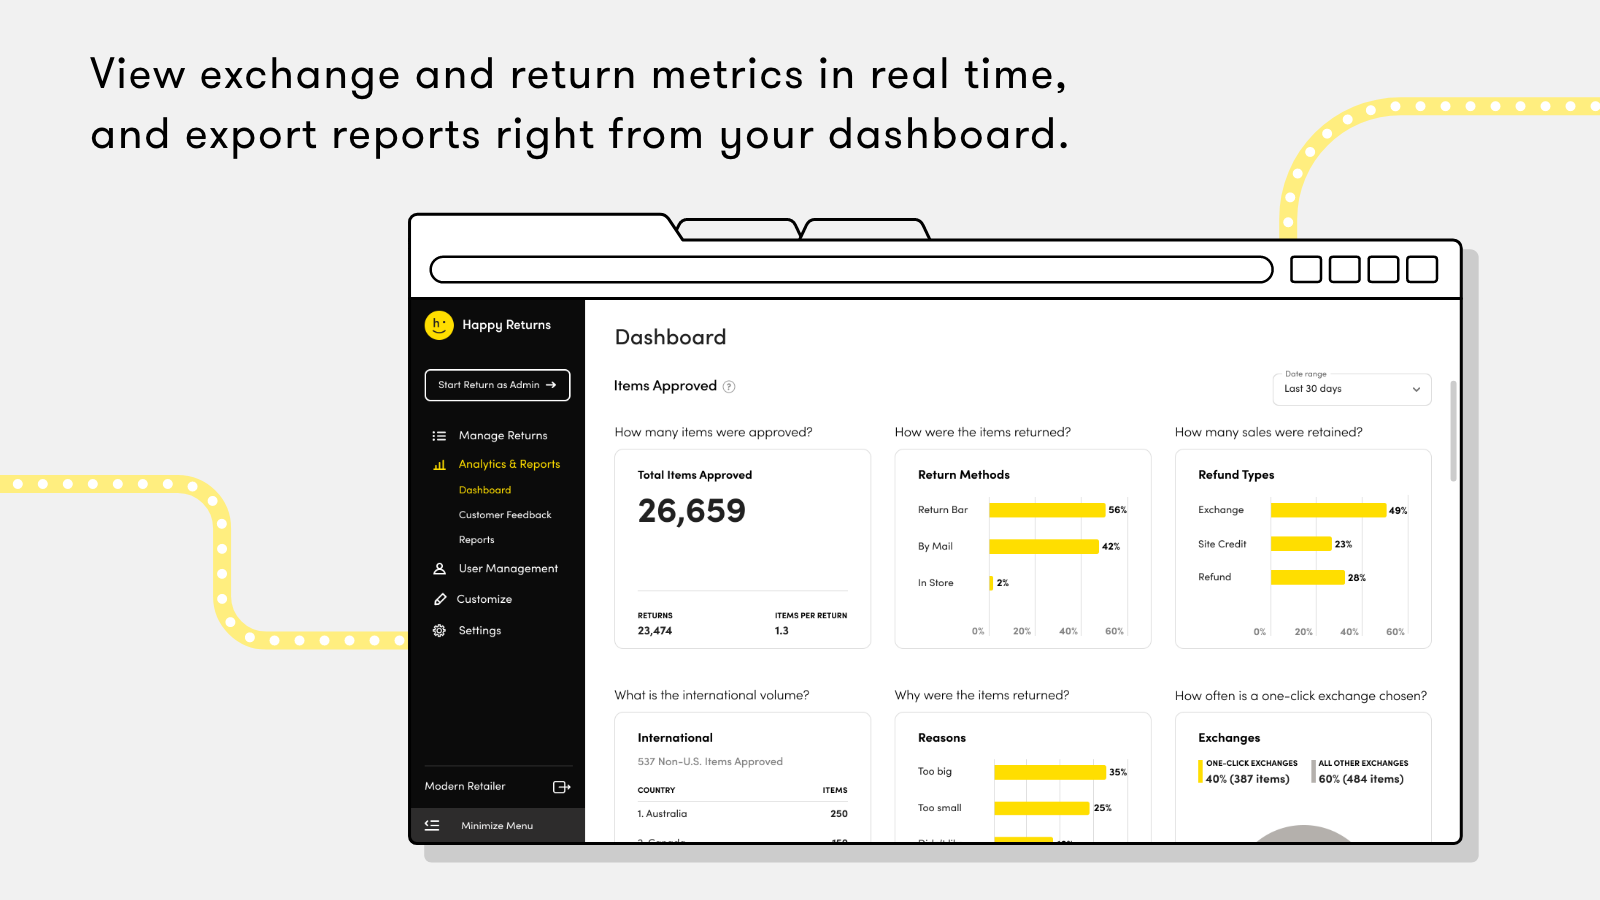 extensive analytics and reporting